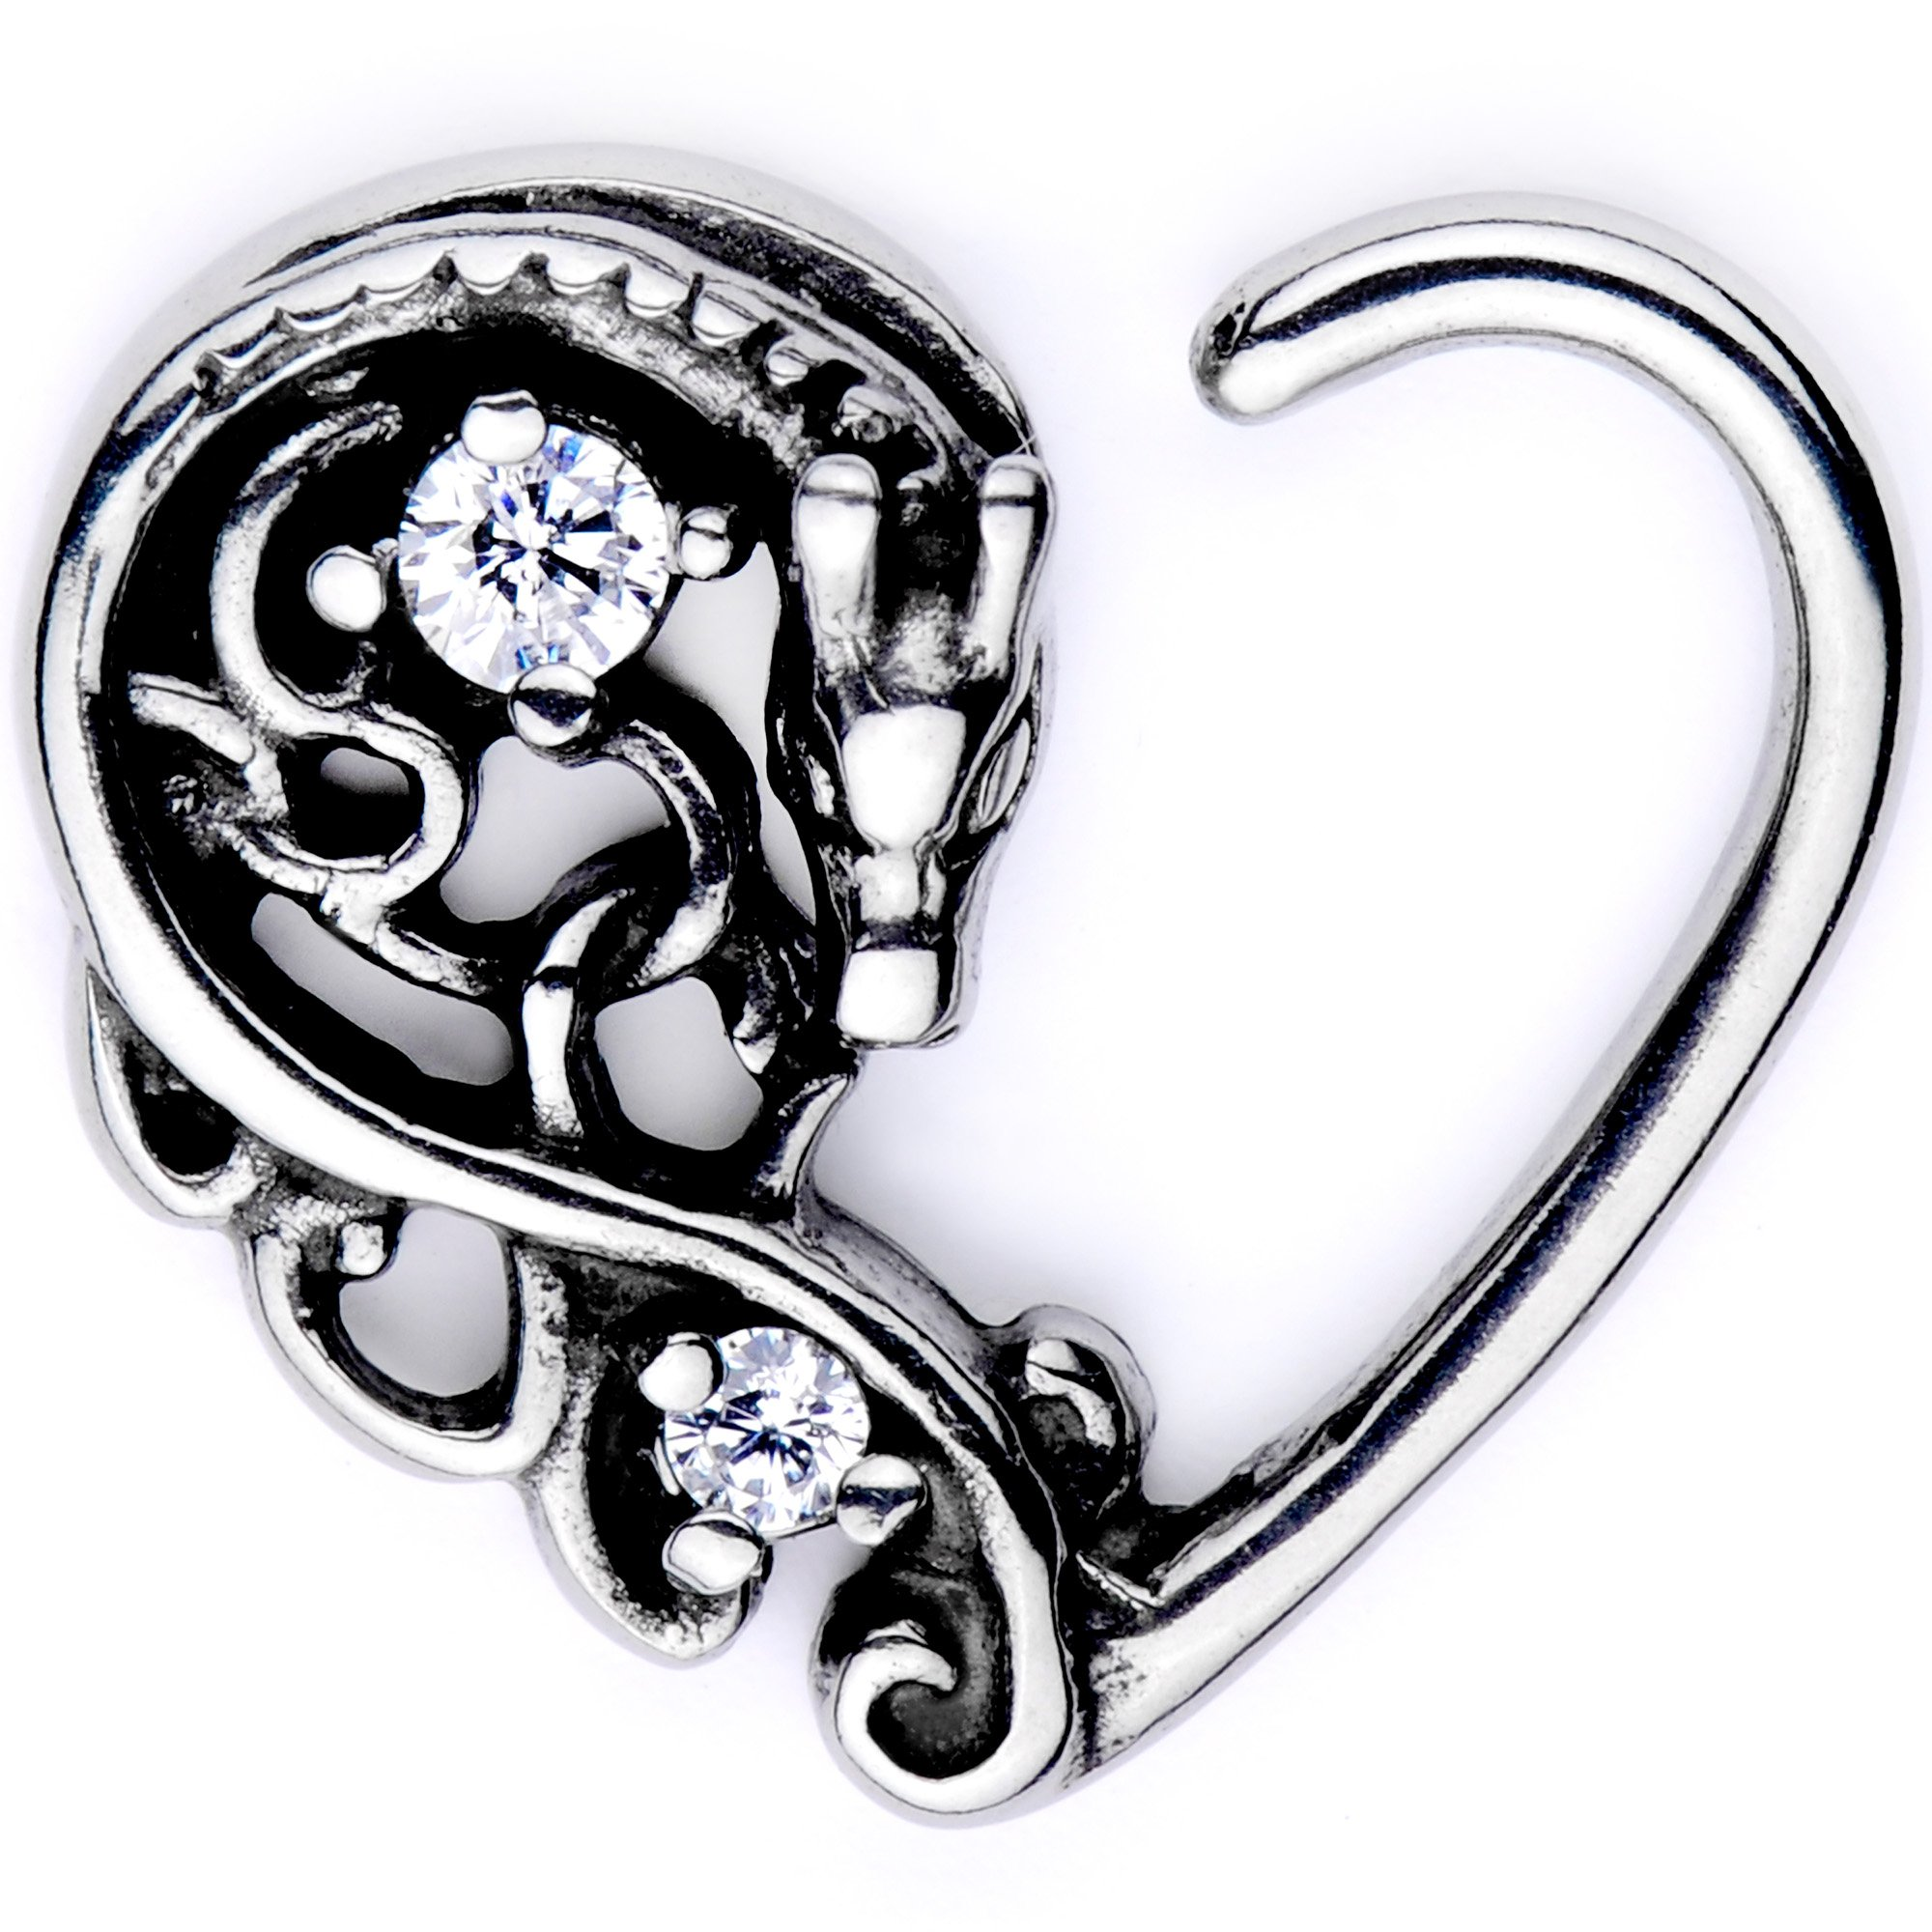 Body Candy Body Piercing Jewelry Stainless Steel 16G Right Closure Daith Cartilage Dragon Heart Tragus Earring by Body Candy